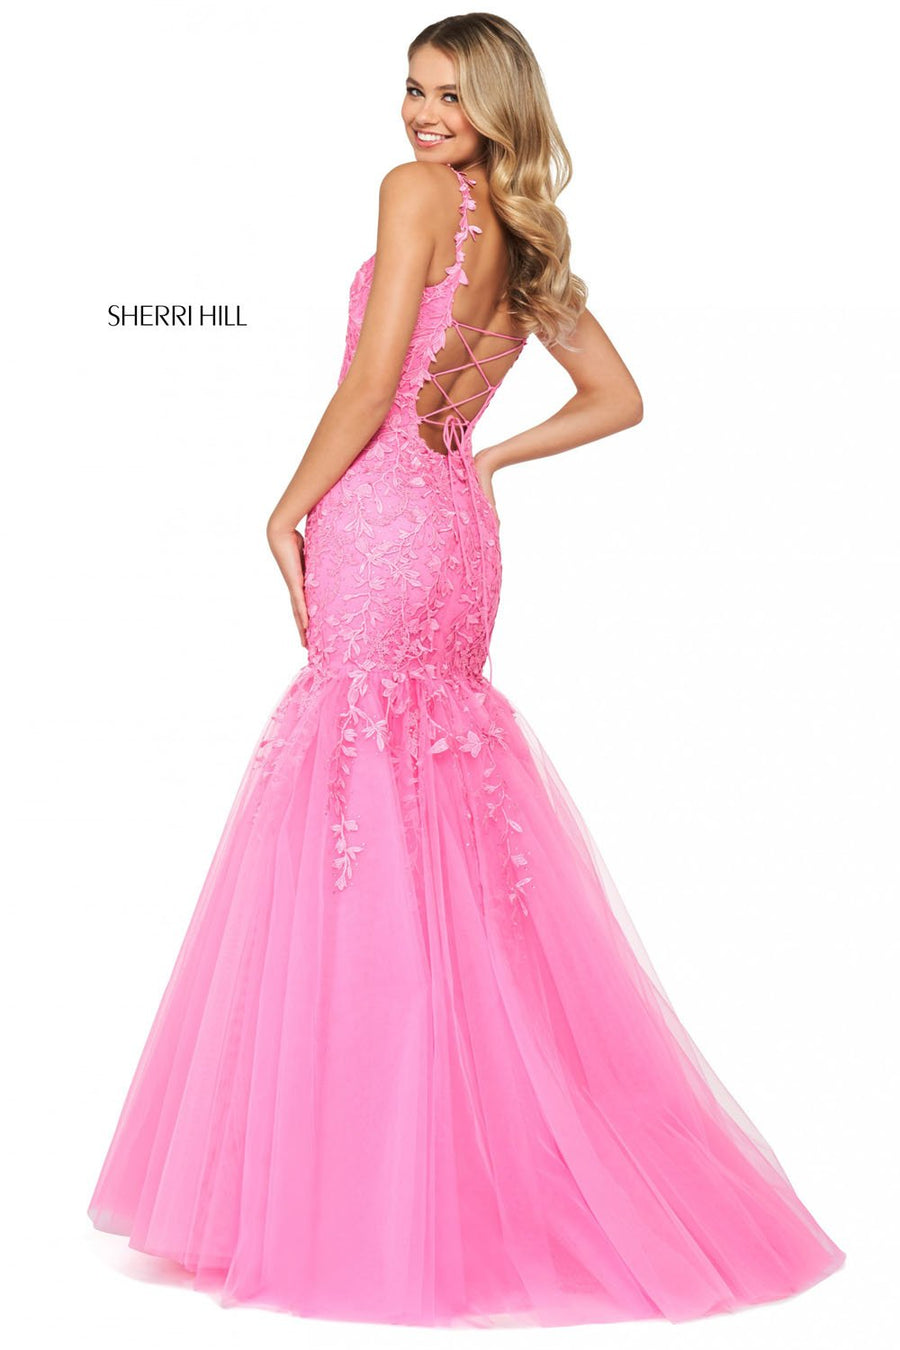 Sherri Hill 53826 prom dress images.  Sherri Hill 53826 is available in these colors: Blush, Lilac, Coral, Ivory Nude, Light Blue, Yellow, Bright Pink, Gold, Black, Red.